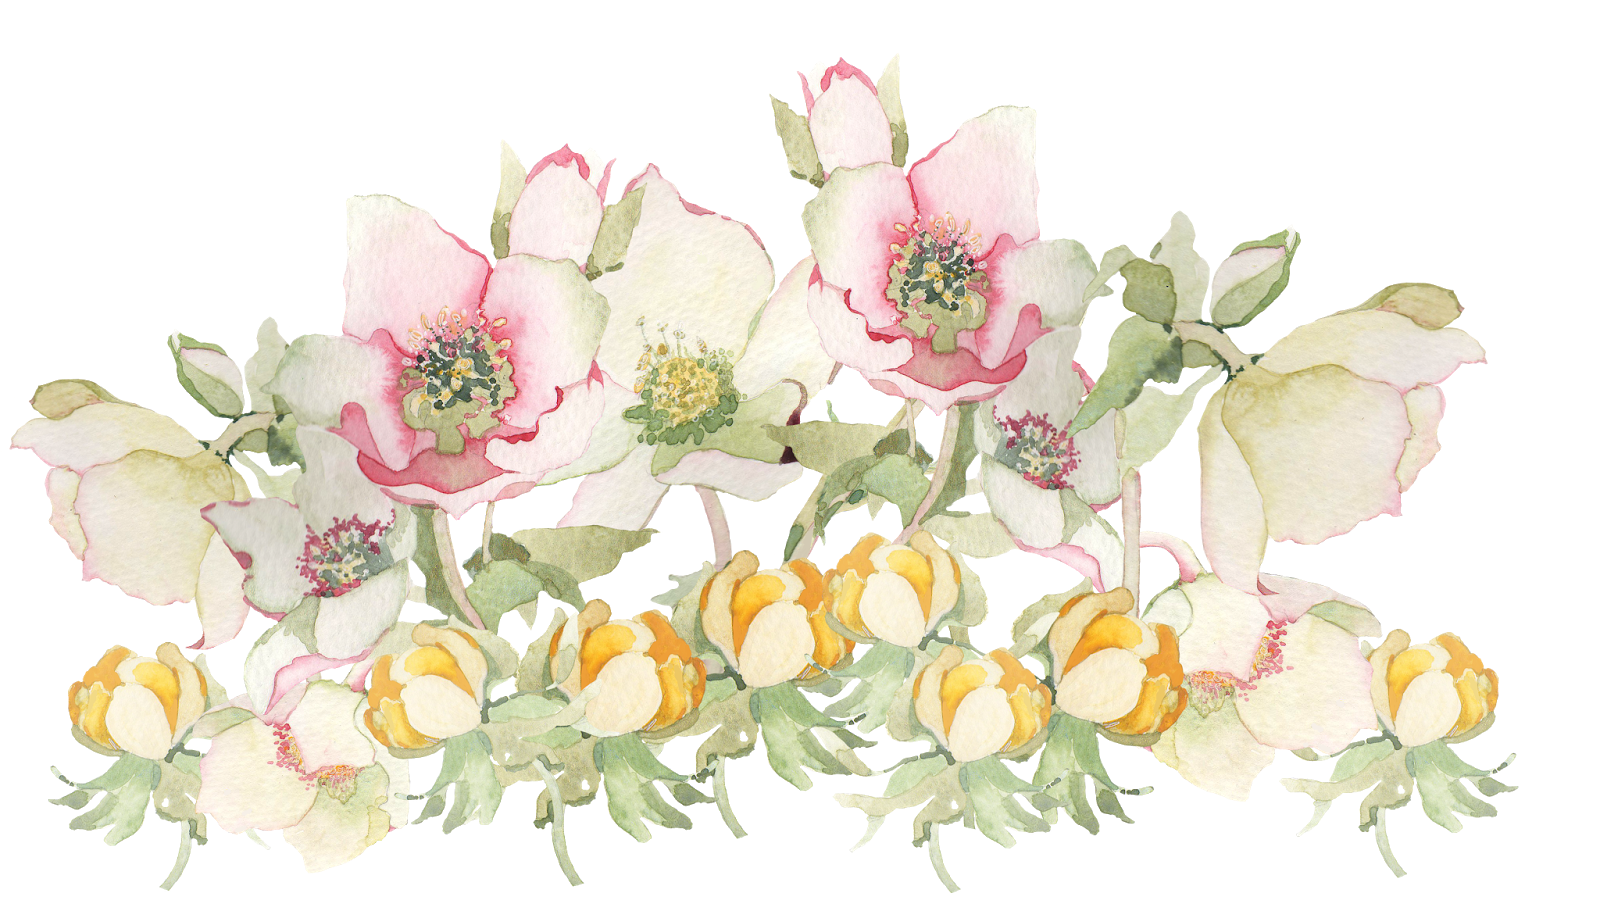 Spring flower png. Flowers transparent pictures free